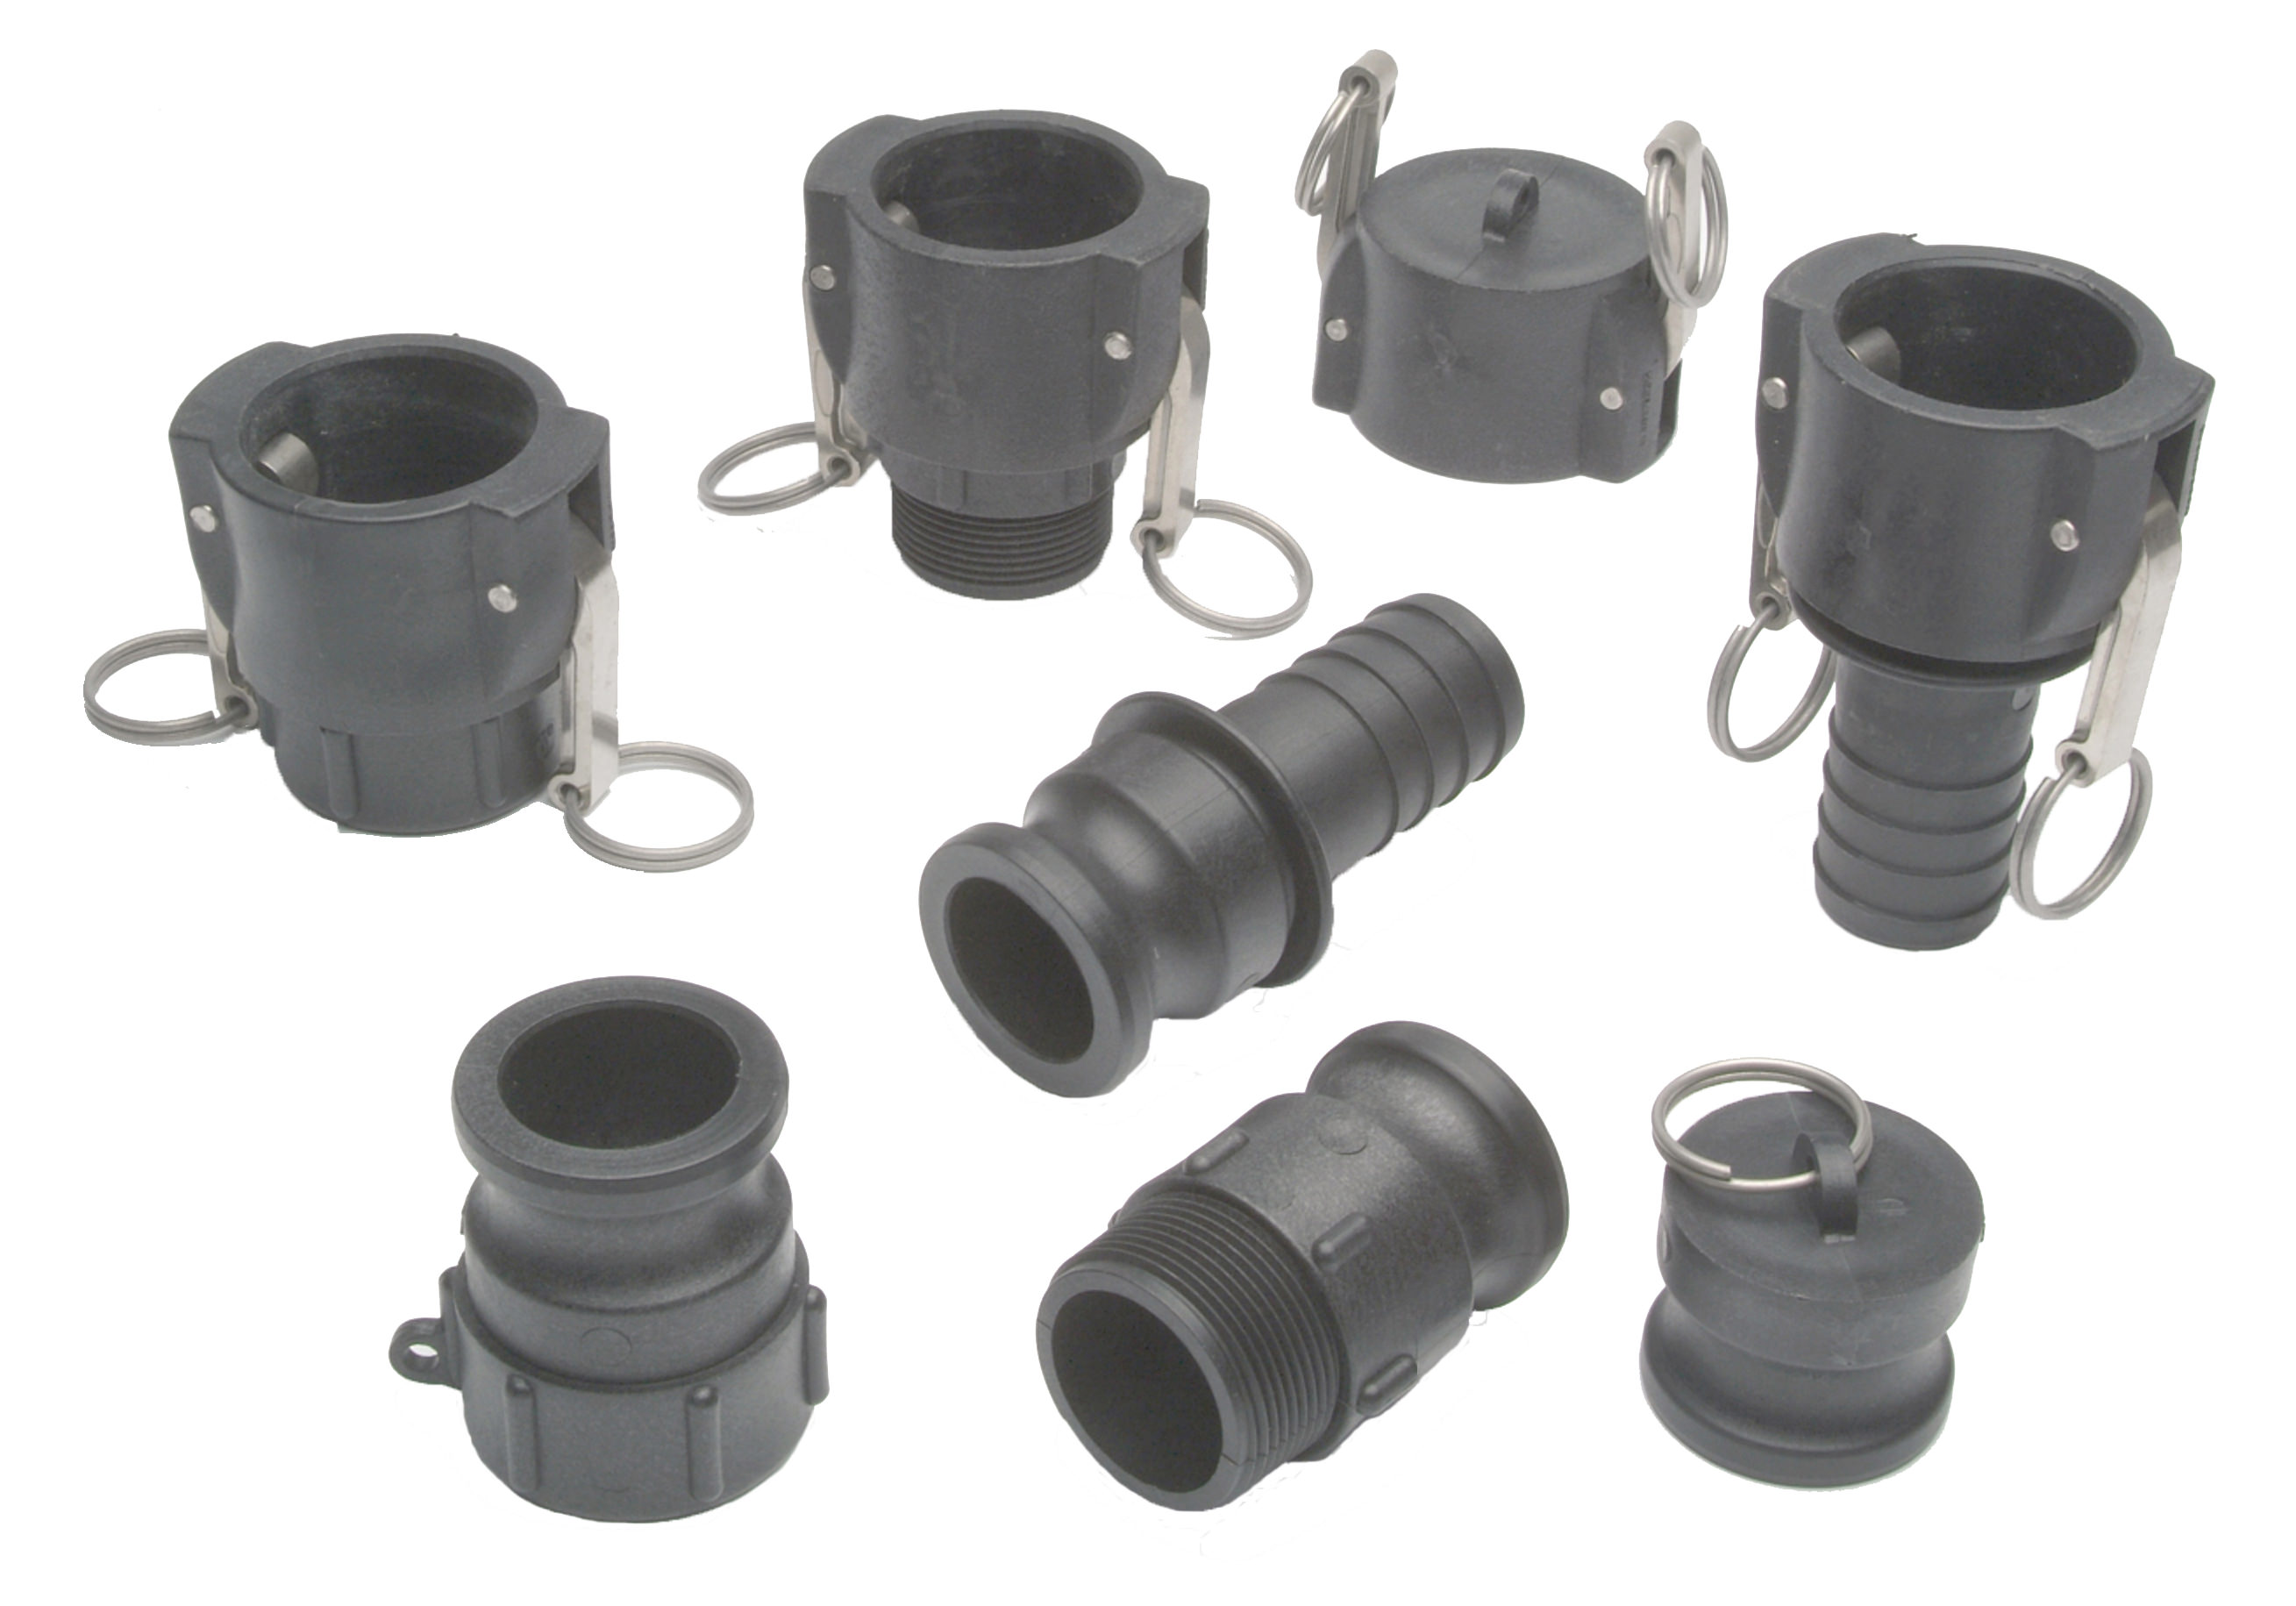 The Ultimate Guide To Camlock Fittings | Action Sealtite